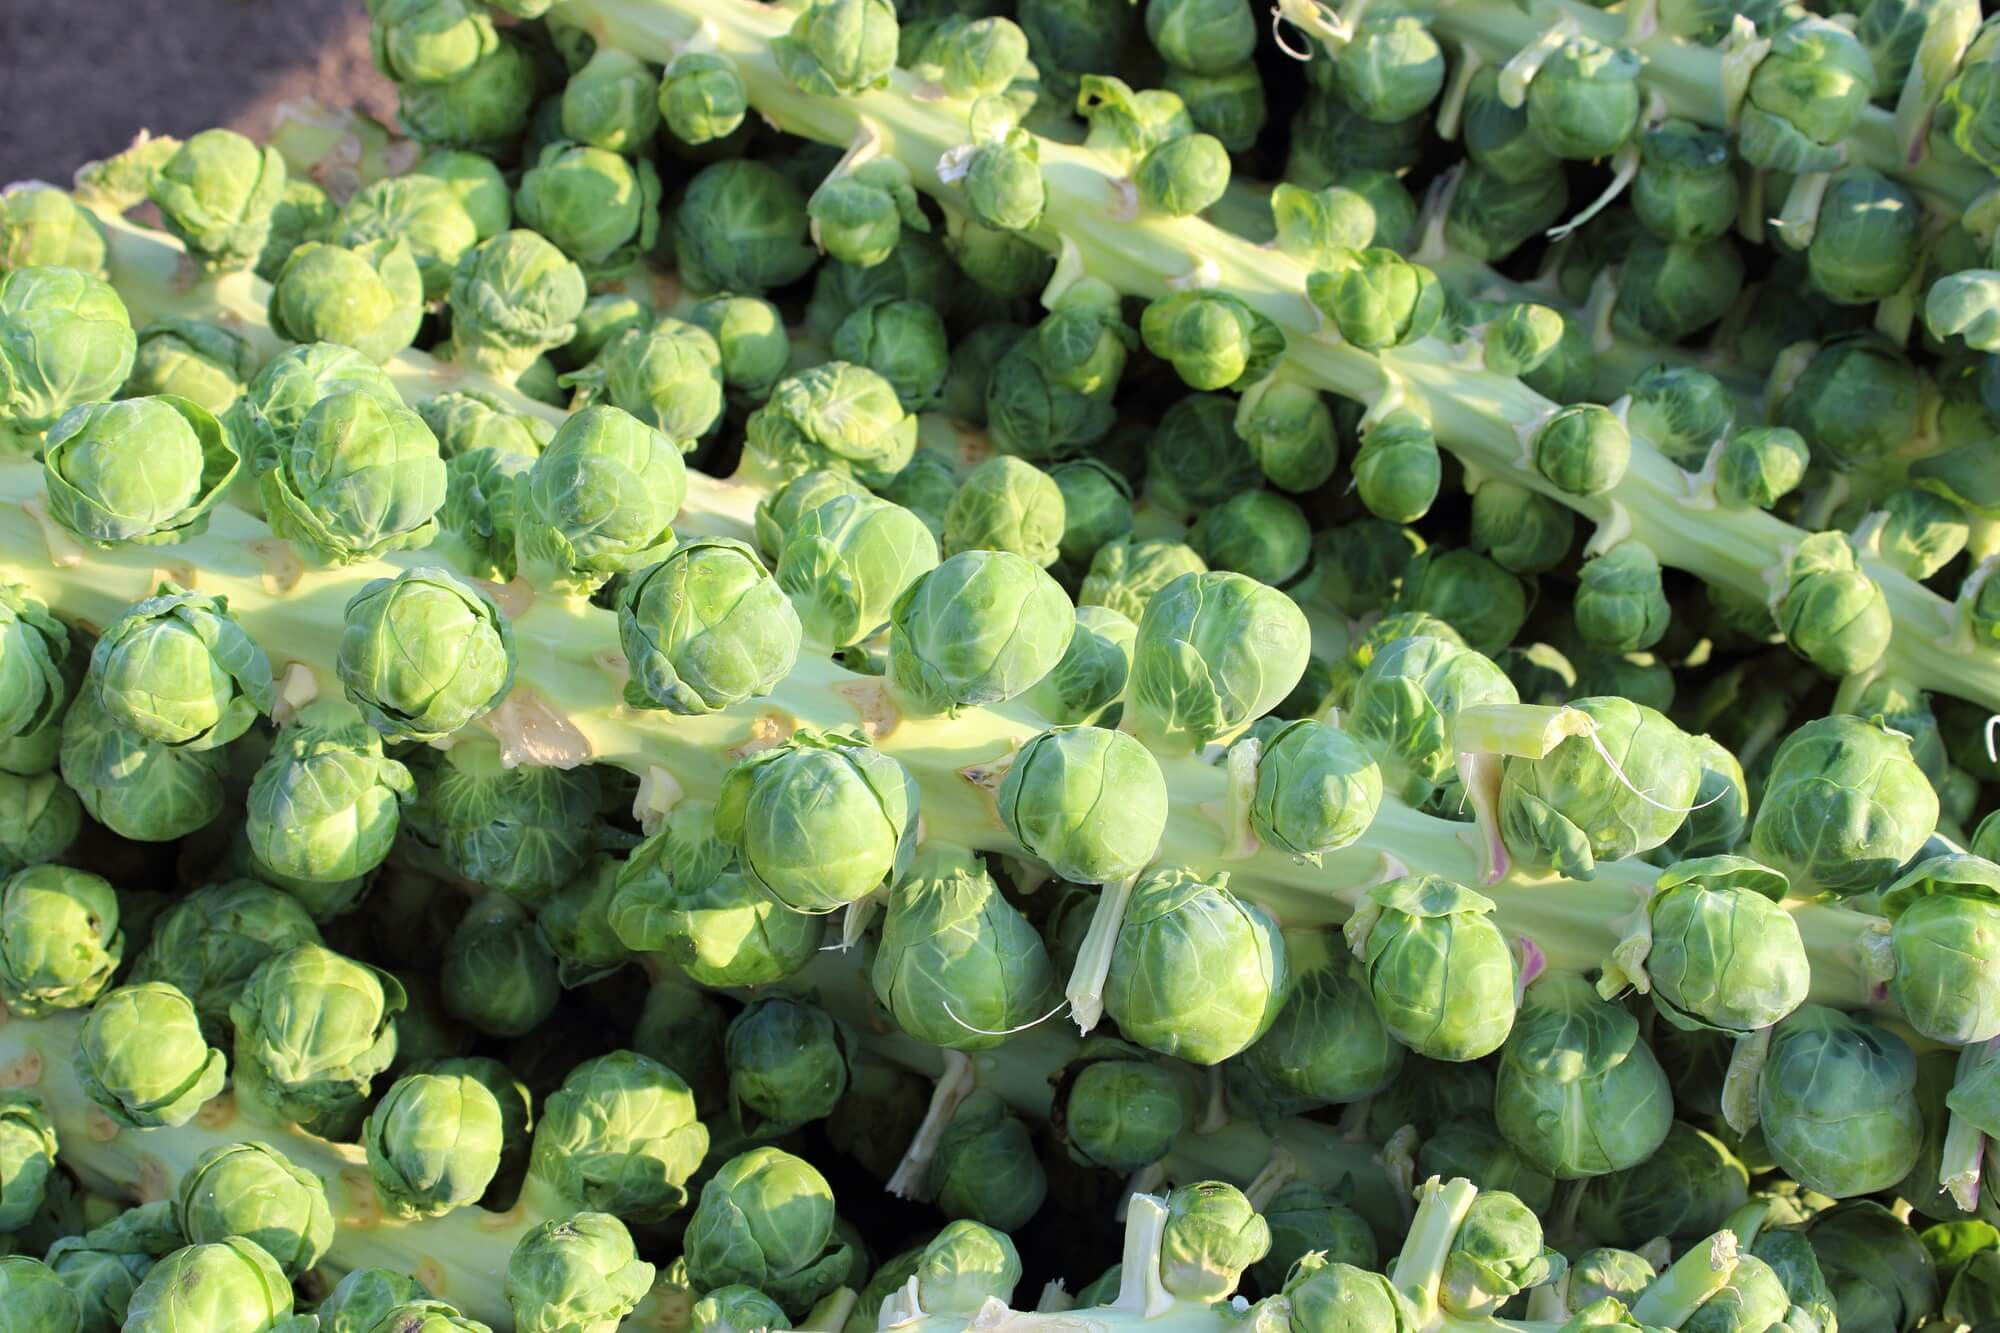 Brussels sprouts stalk with individual sprouts.